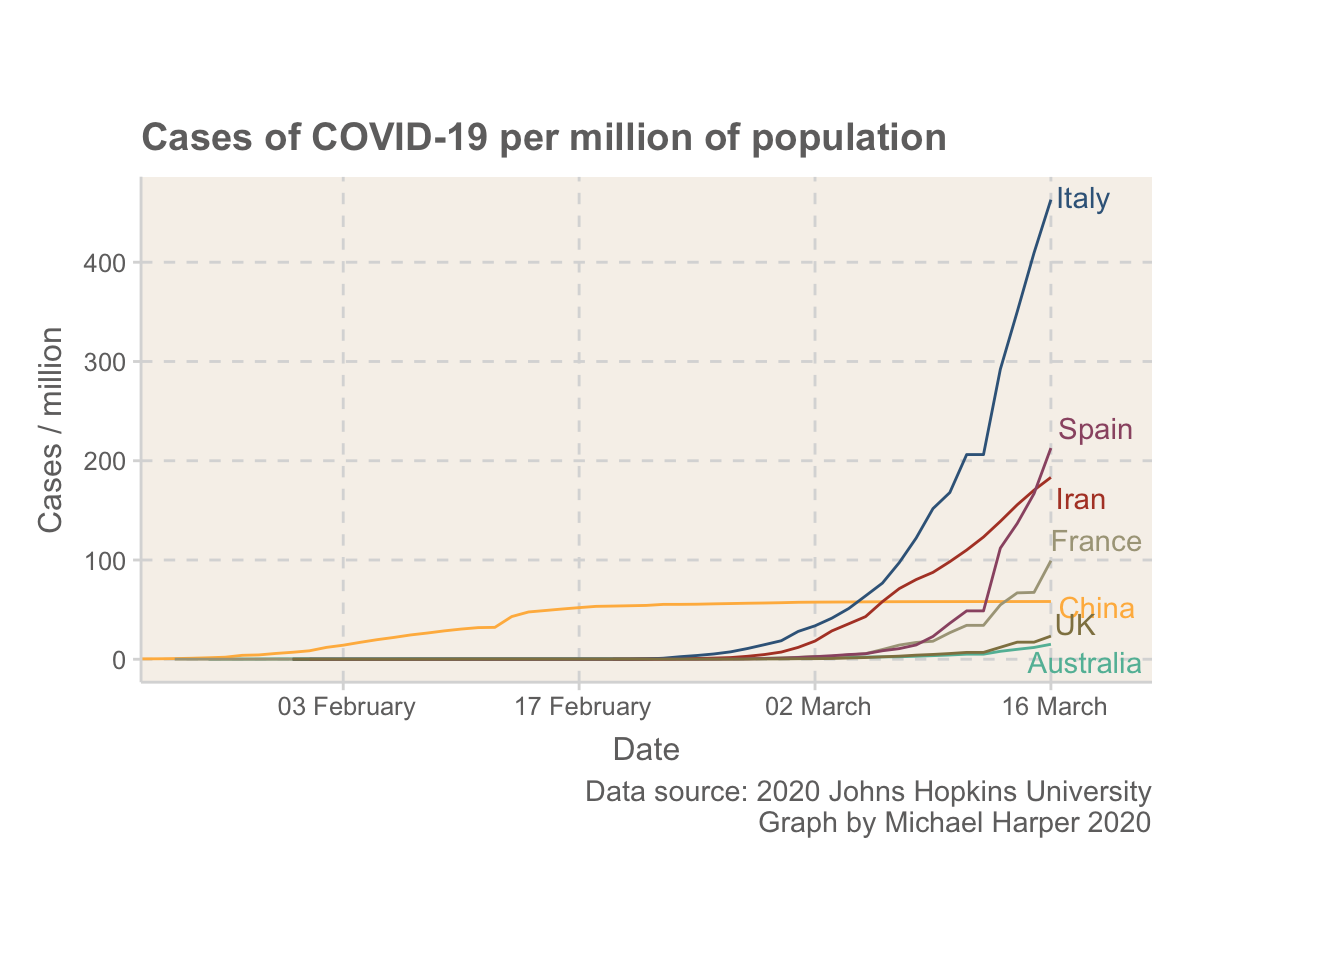 Normalised rates of COVID-19 for some of the main countries with outbreaks